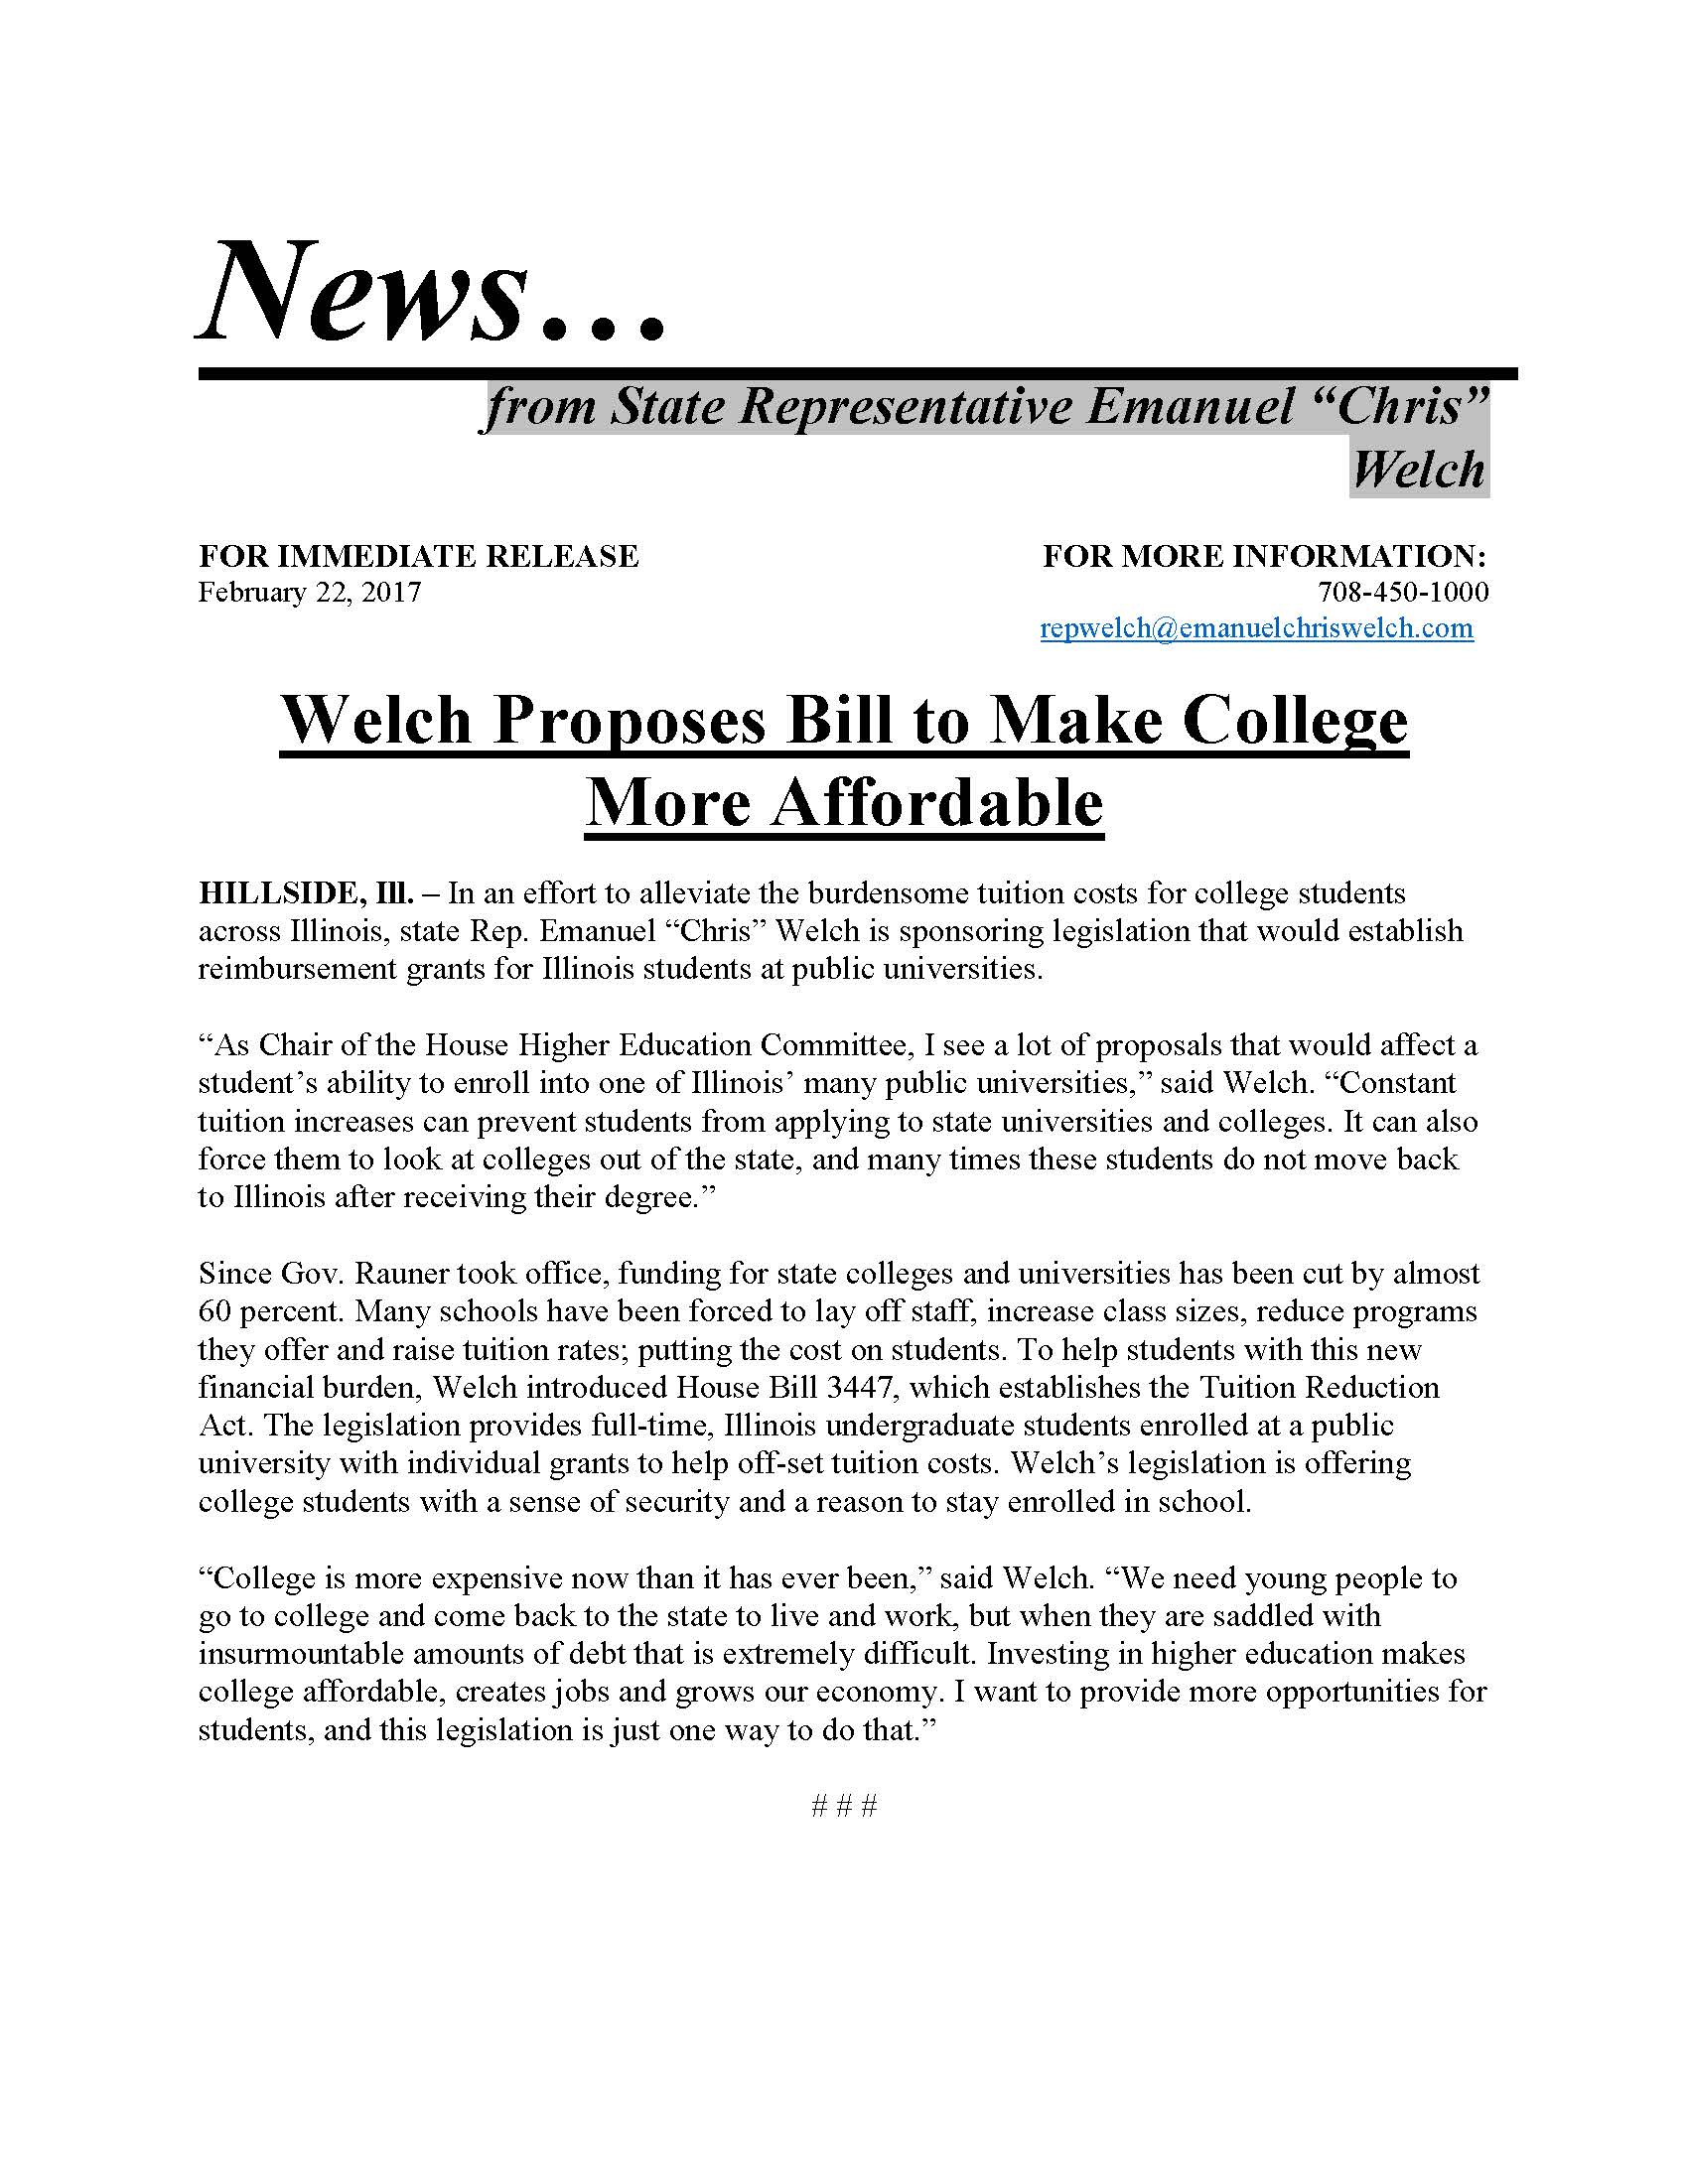 Welch Proposes Bill to Make College More Affordable  (February 22, 2017)